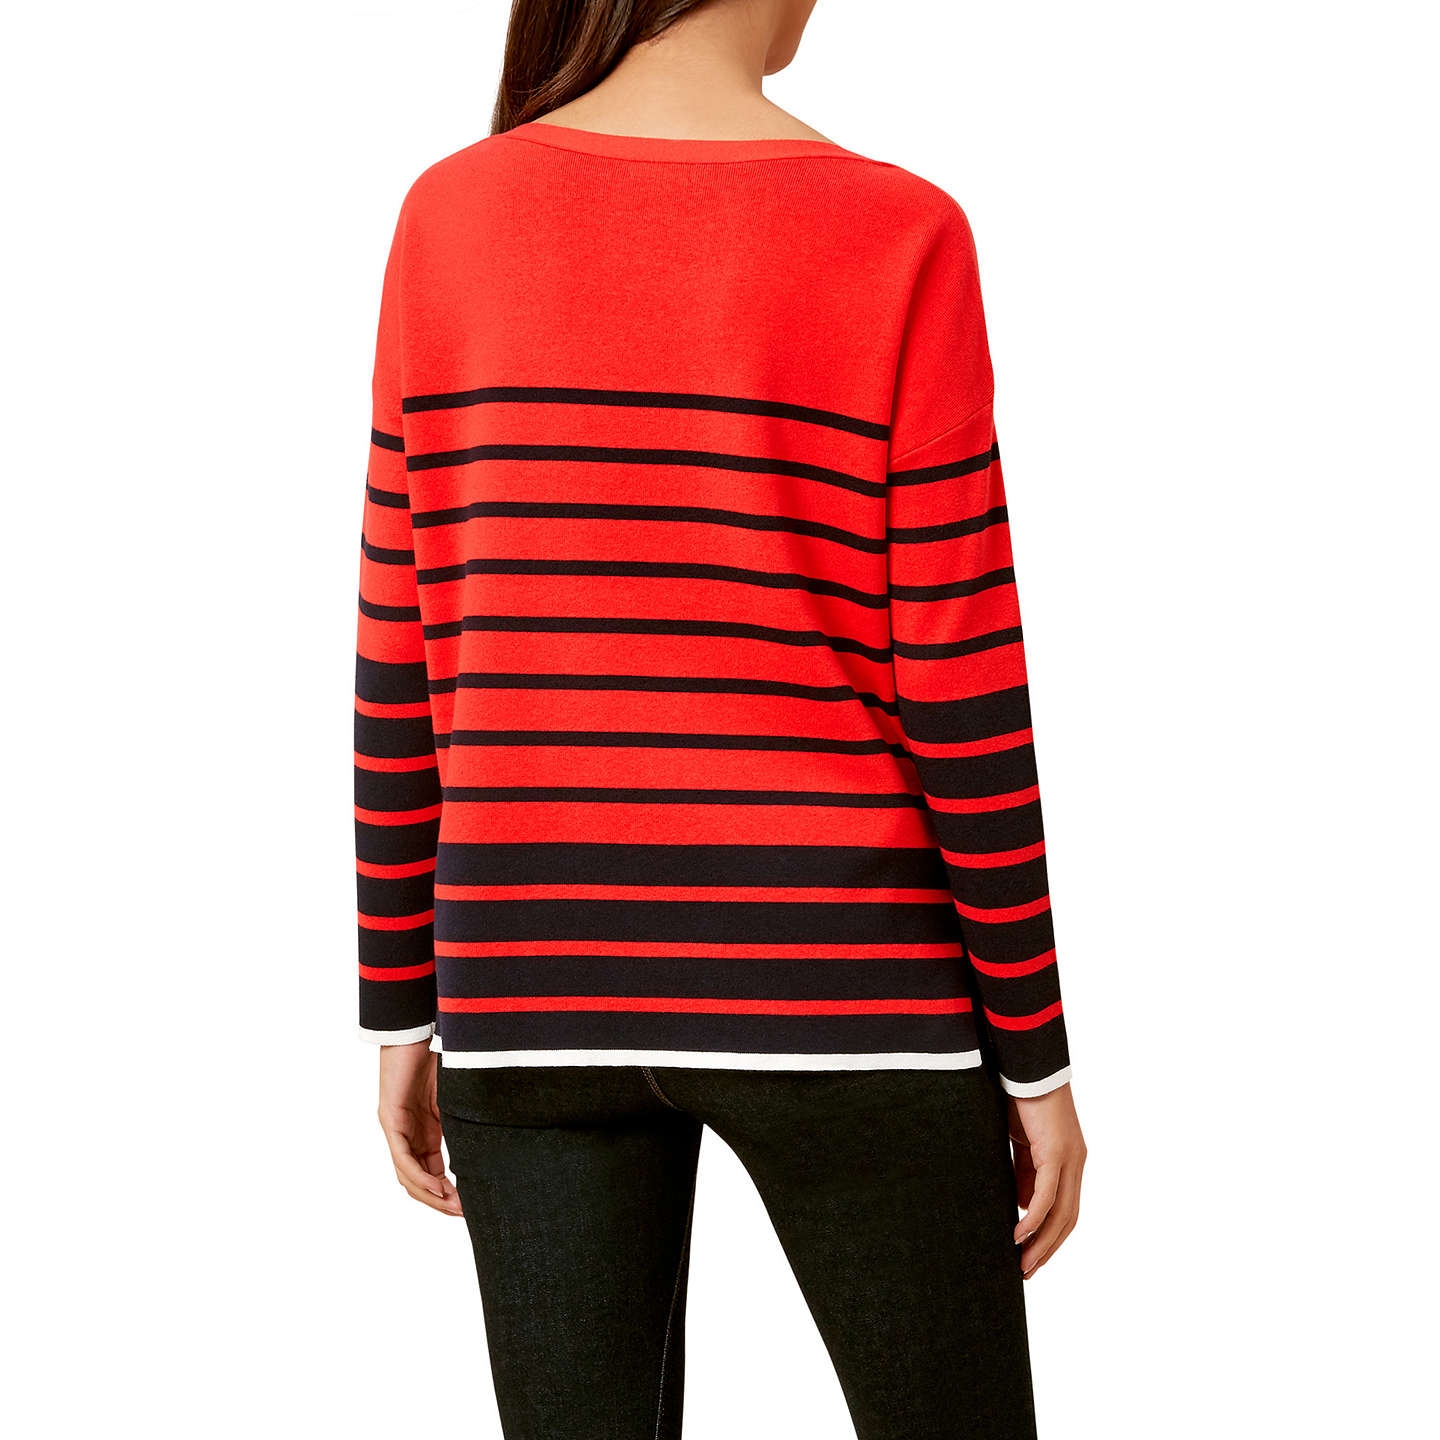 BuyHobbs Rhian Striped Jumper, Red/Navy, XS Online at johnlewis.com